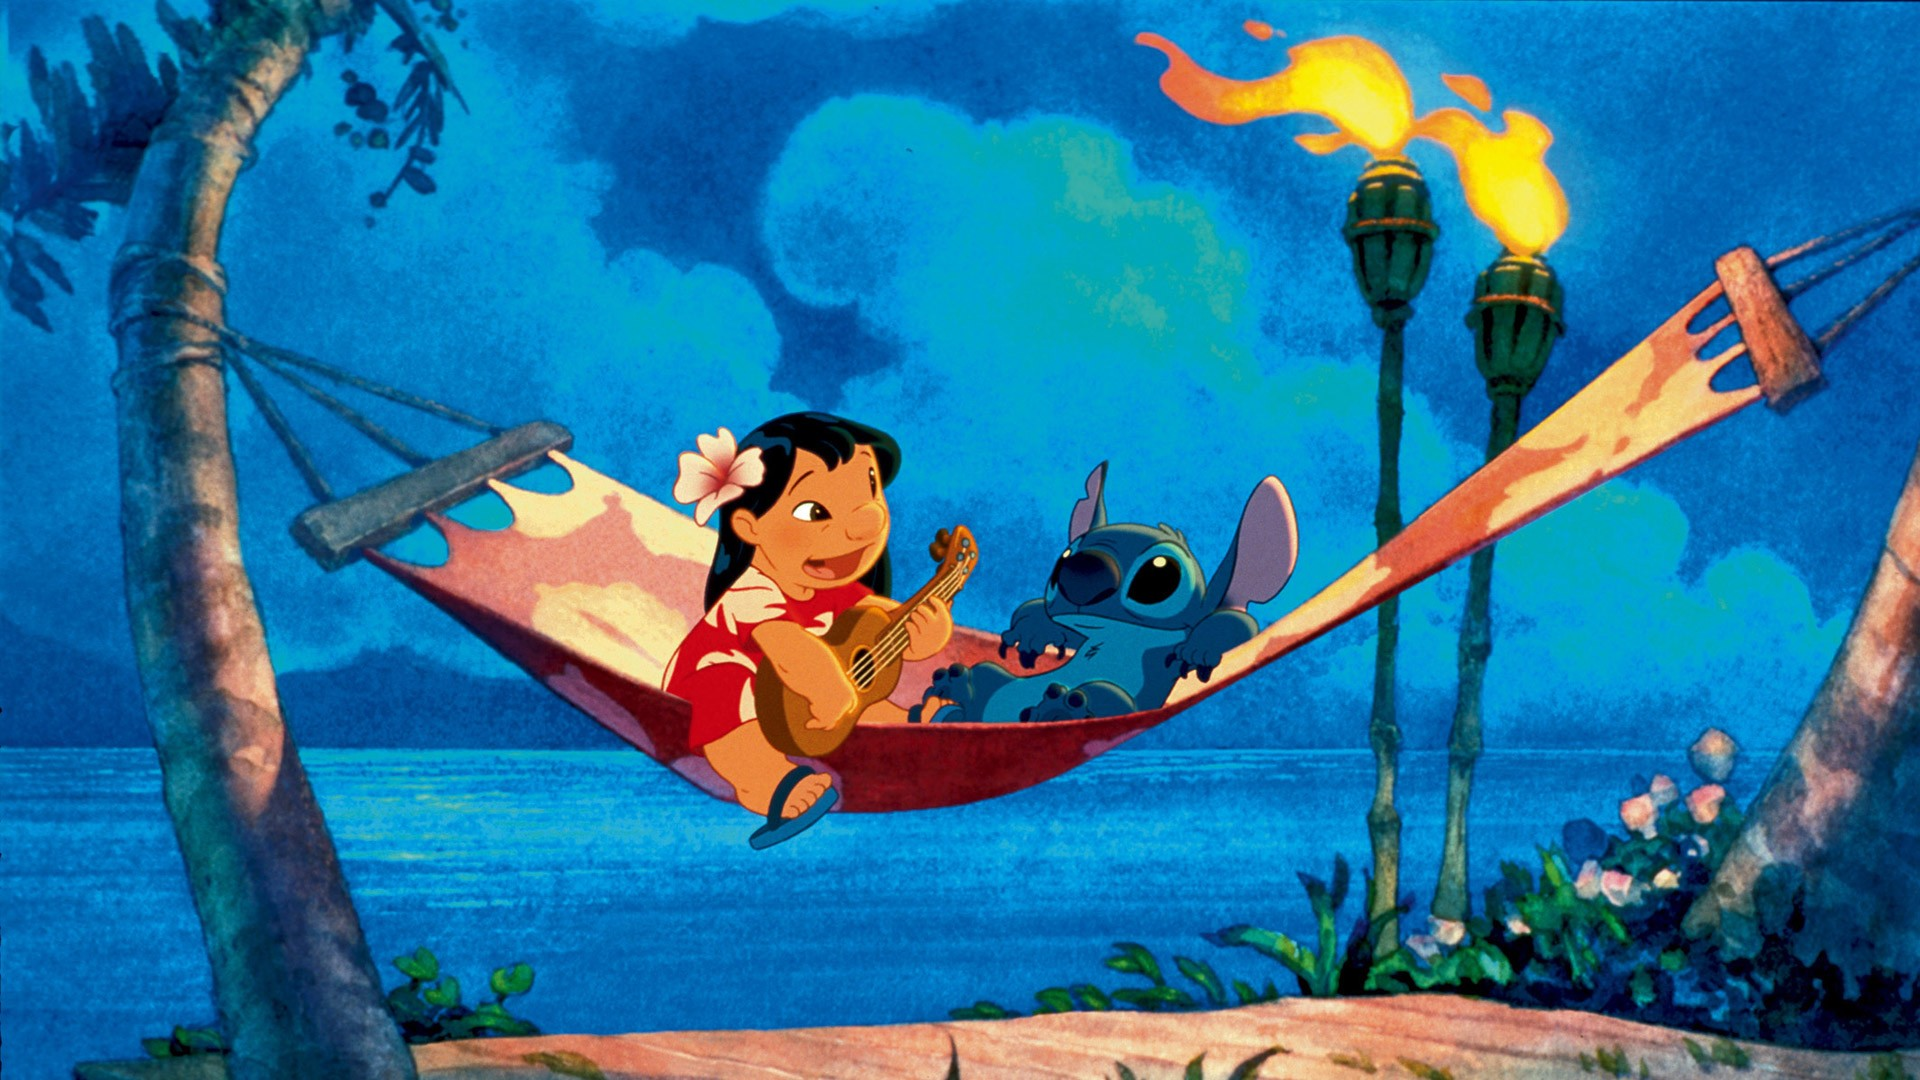 Lilo And Stitch Wallpaper 1 Download Free Beautiful Backgrounds